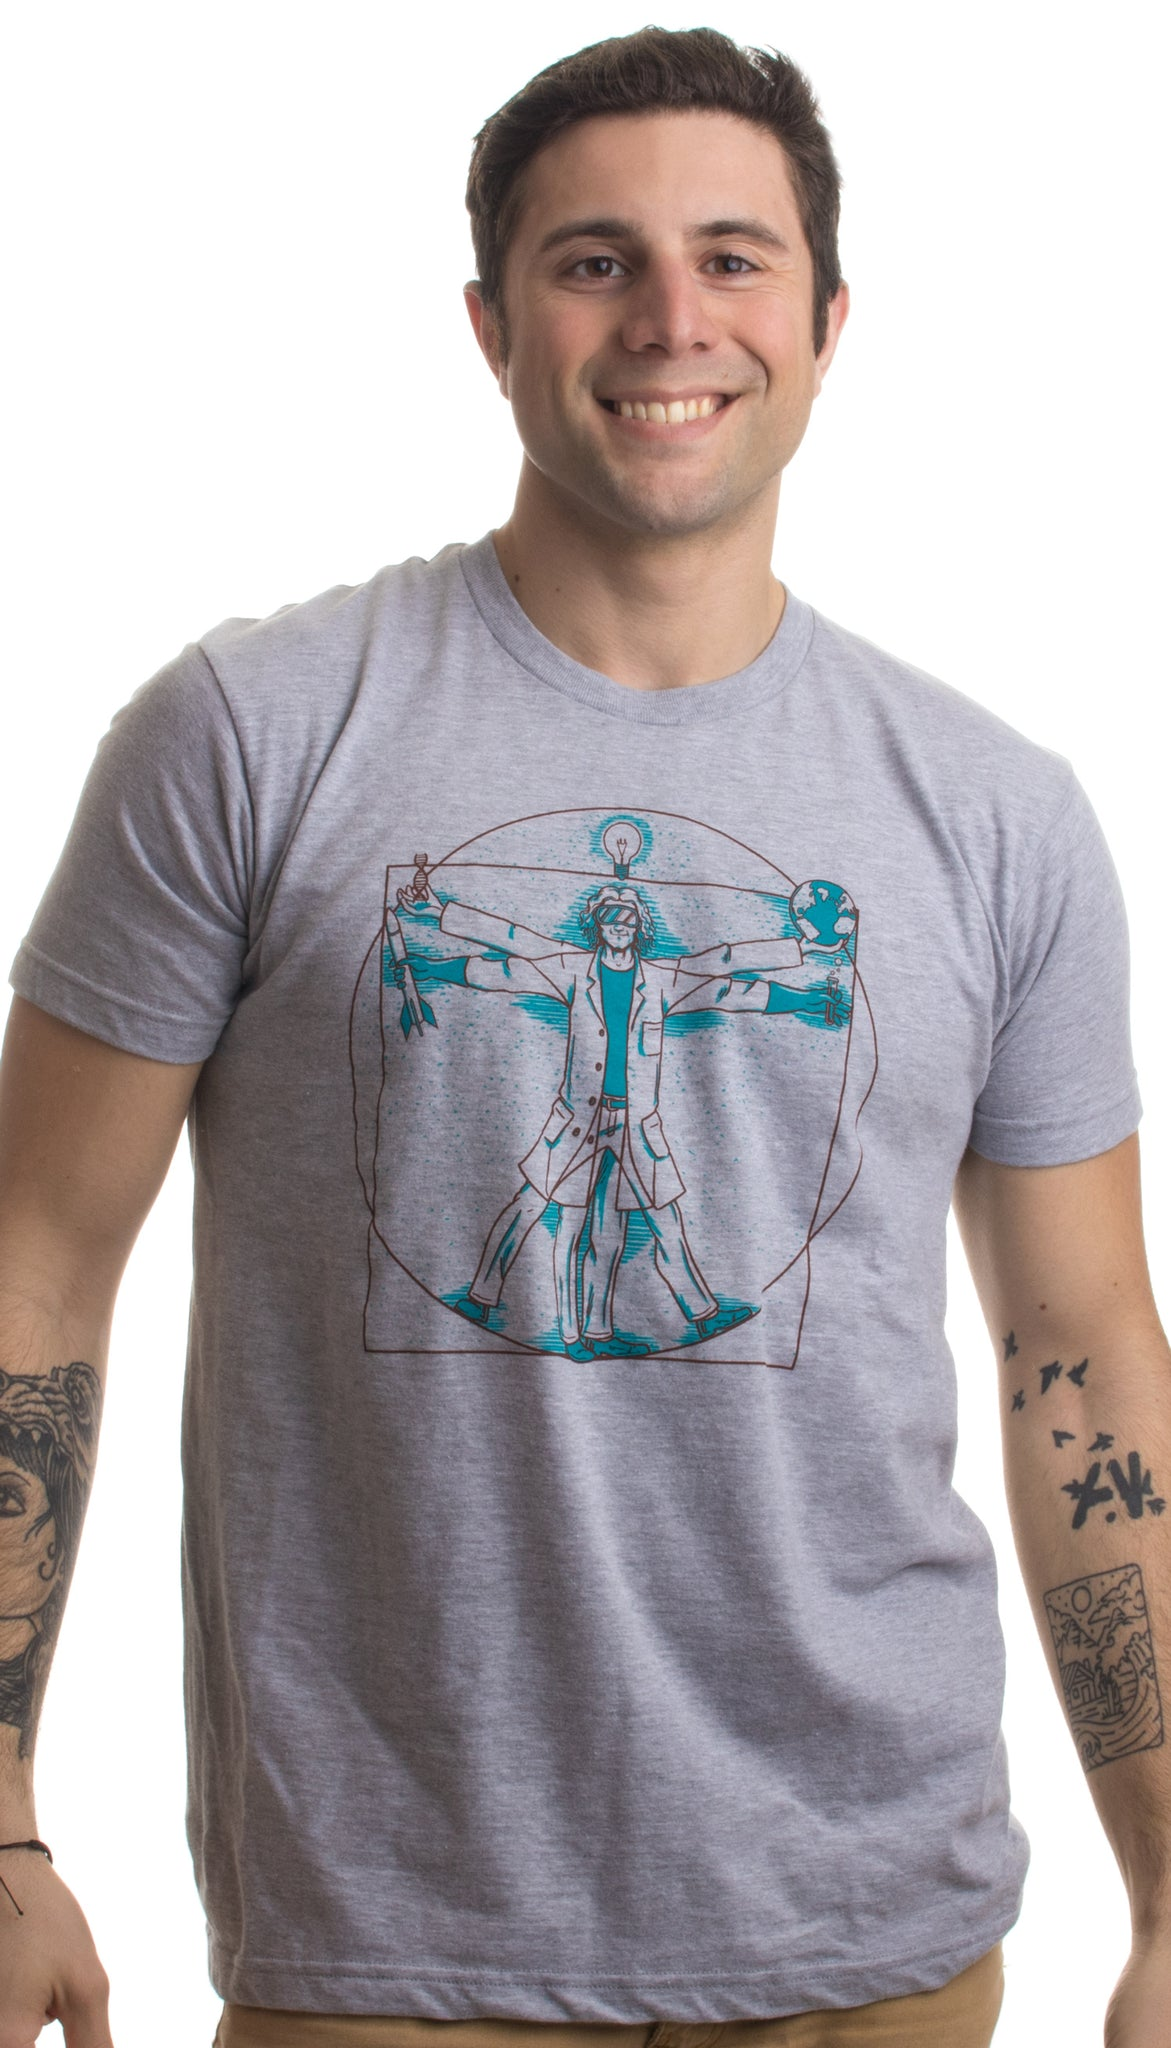 352da574e5d7 ... Vitruvian Scientist | Funny Cool Science Nerd Nerdy Geek Geeky Men  Women T-shirt ...